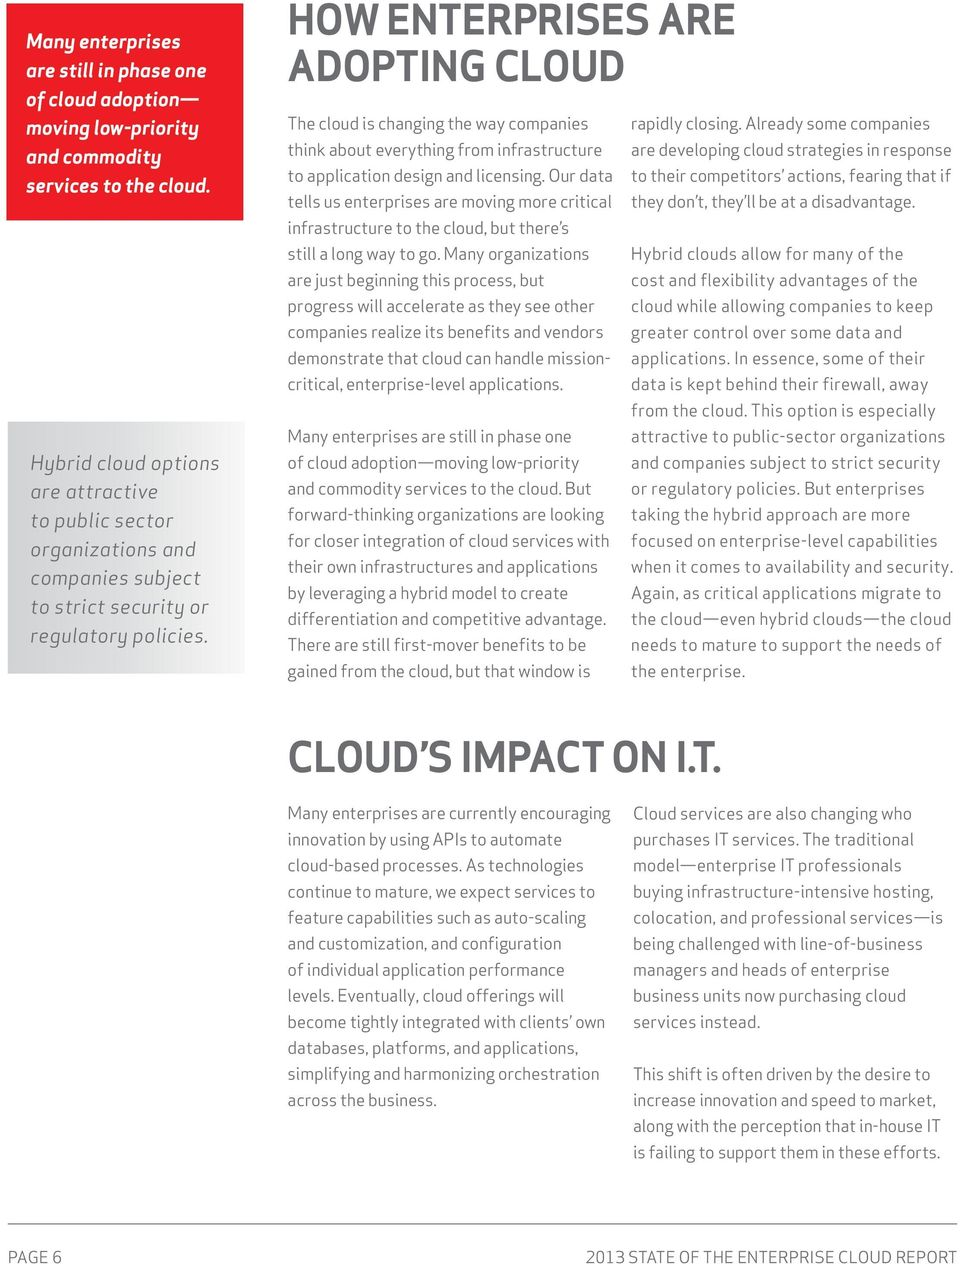 how enterprises are adopting cloud The cloud is changing the way companies think about everything from infrastructure to application design and licensing.